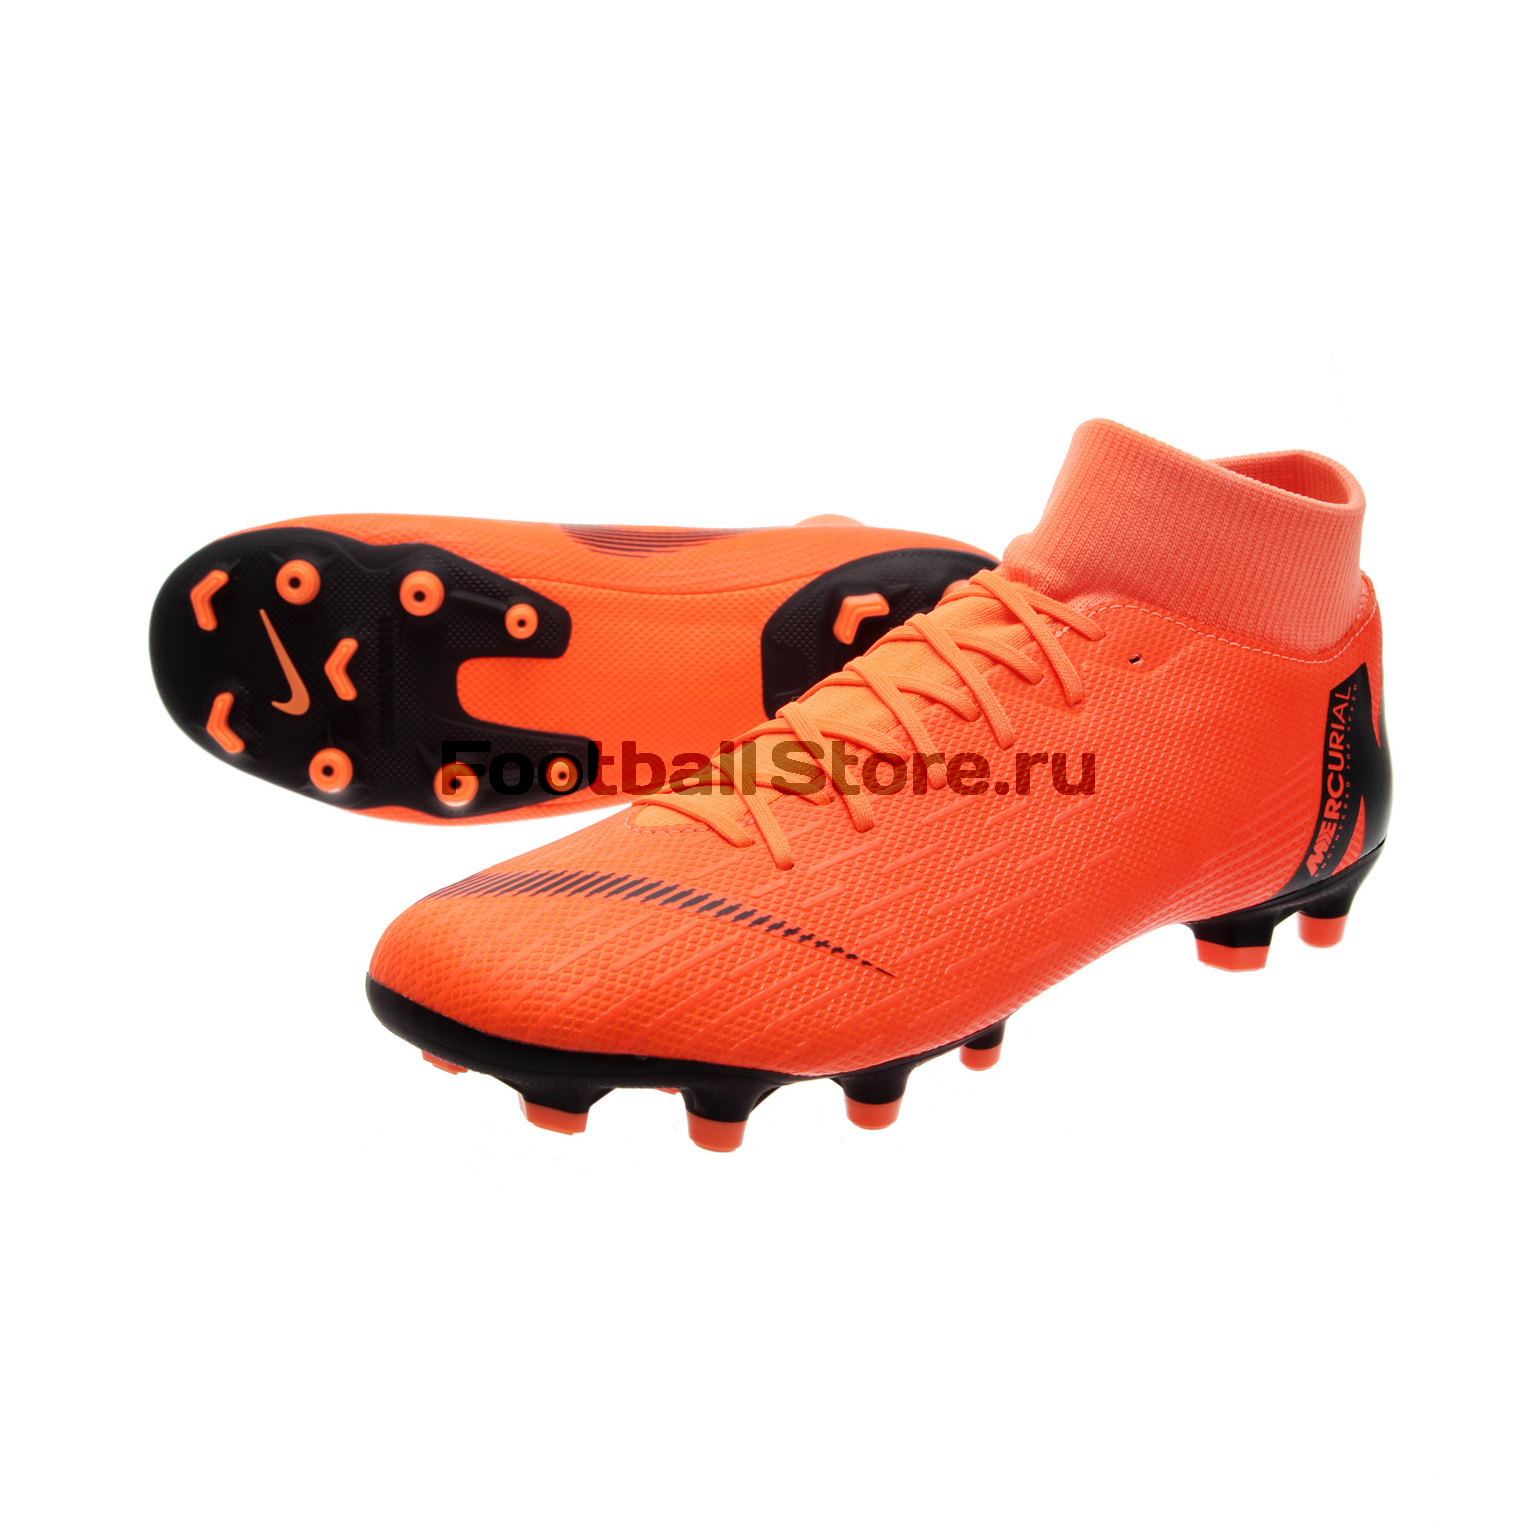 Бутсы Nike Superfly 6 Academy FG/MG  AH7362-810 бутсы nike superfly academy gs cr7 jr fg mg aj3111 390